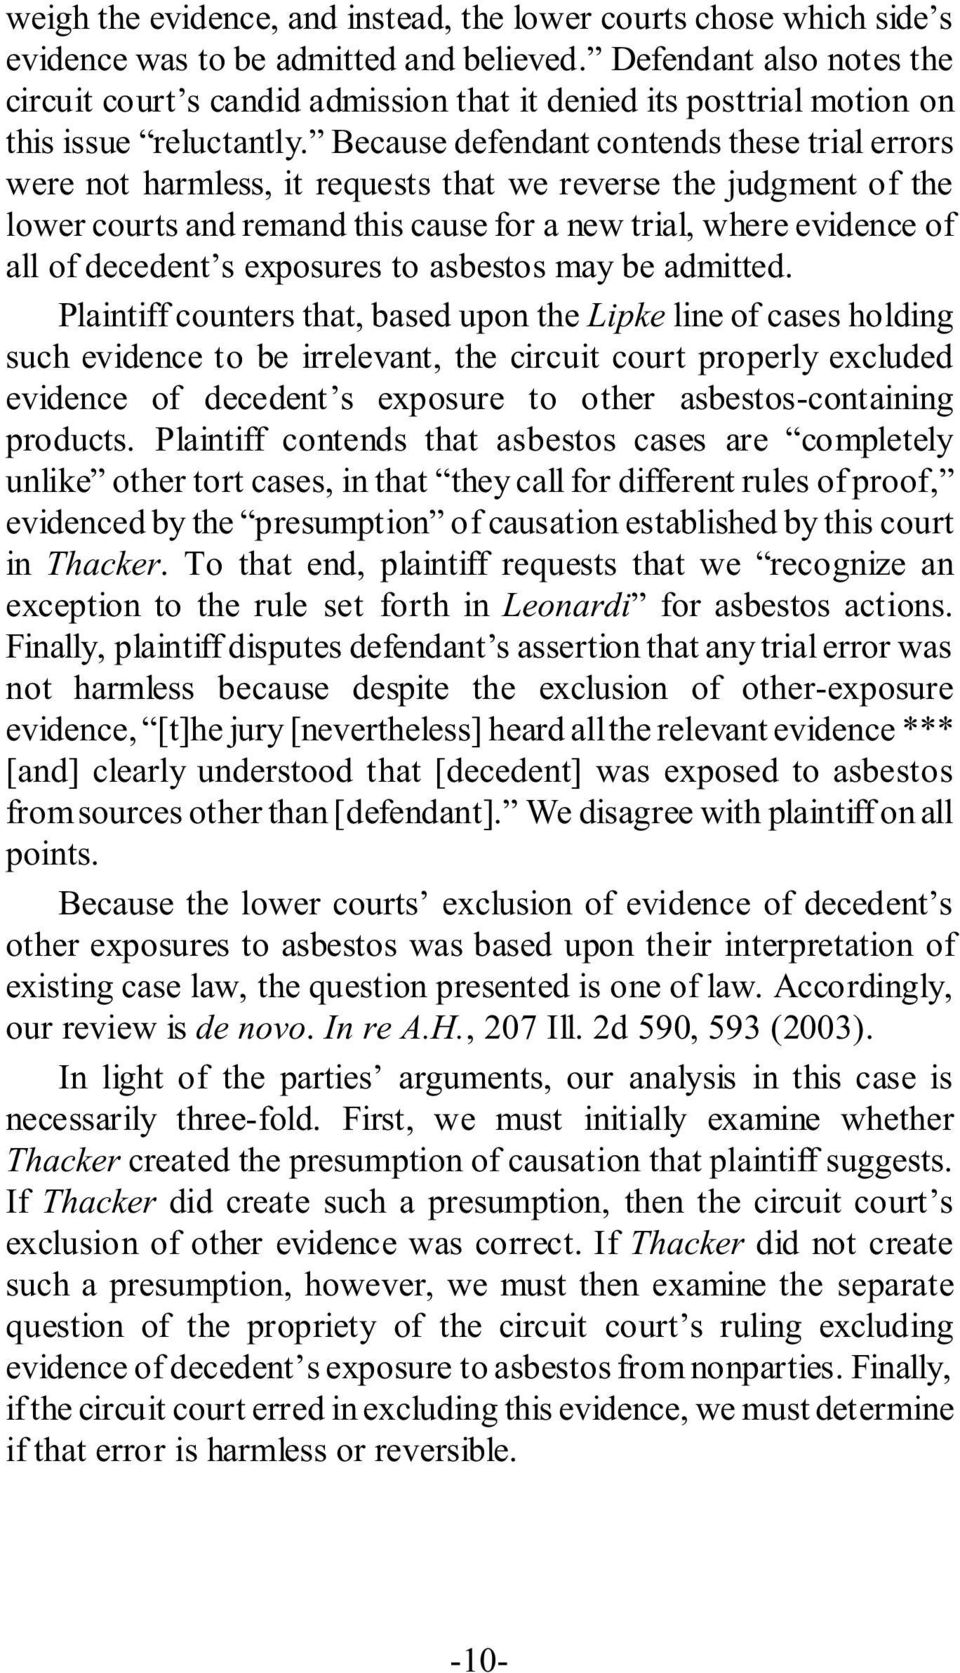 Because defendant contends these trial errors were not harmless, it requests that we reverse the judgment of the lower courts and remand this cause for a new trial, where evidence of all of decedent